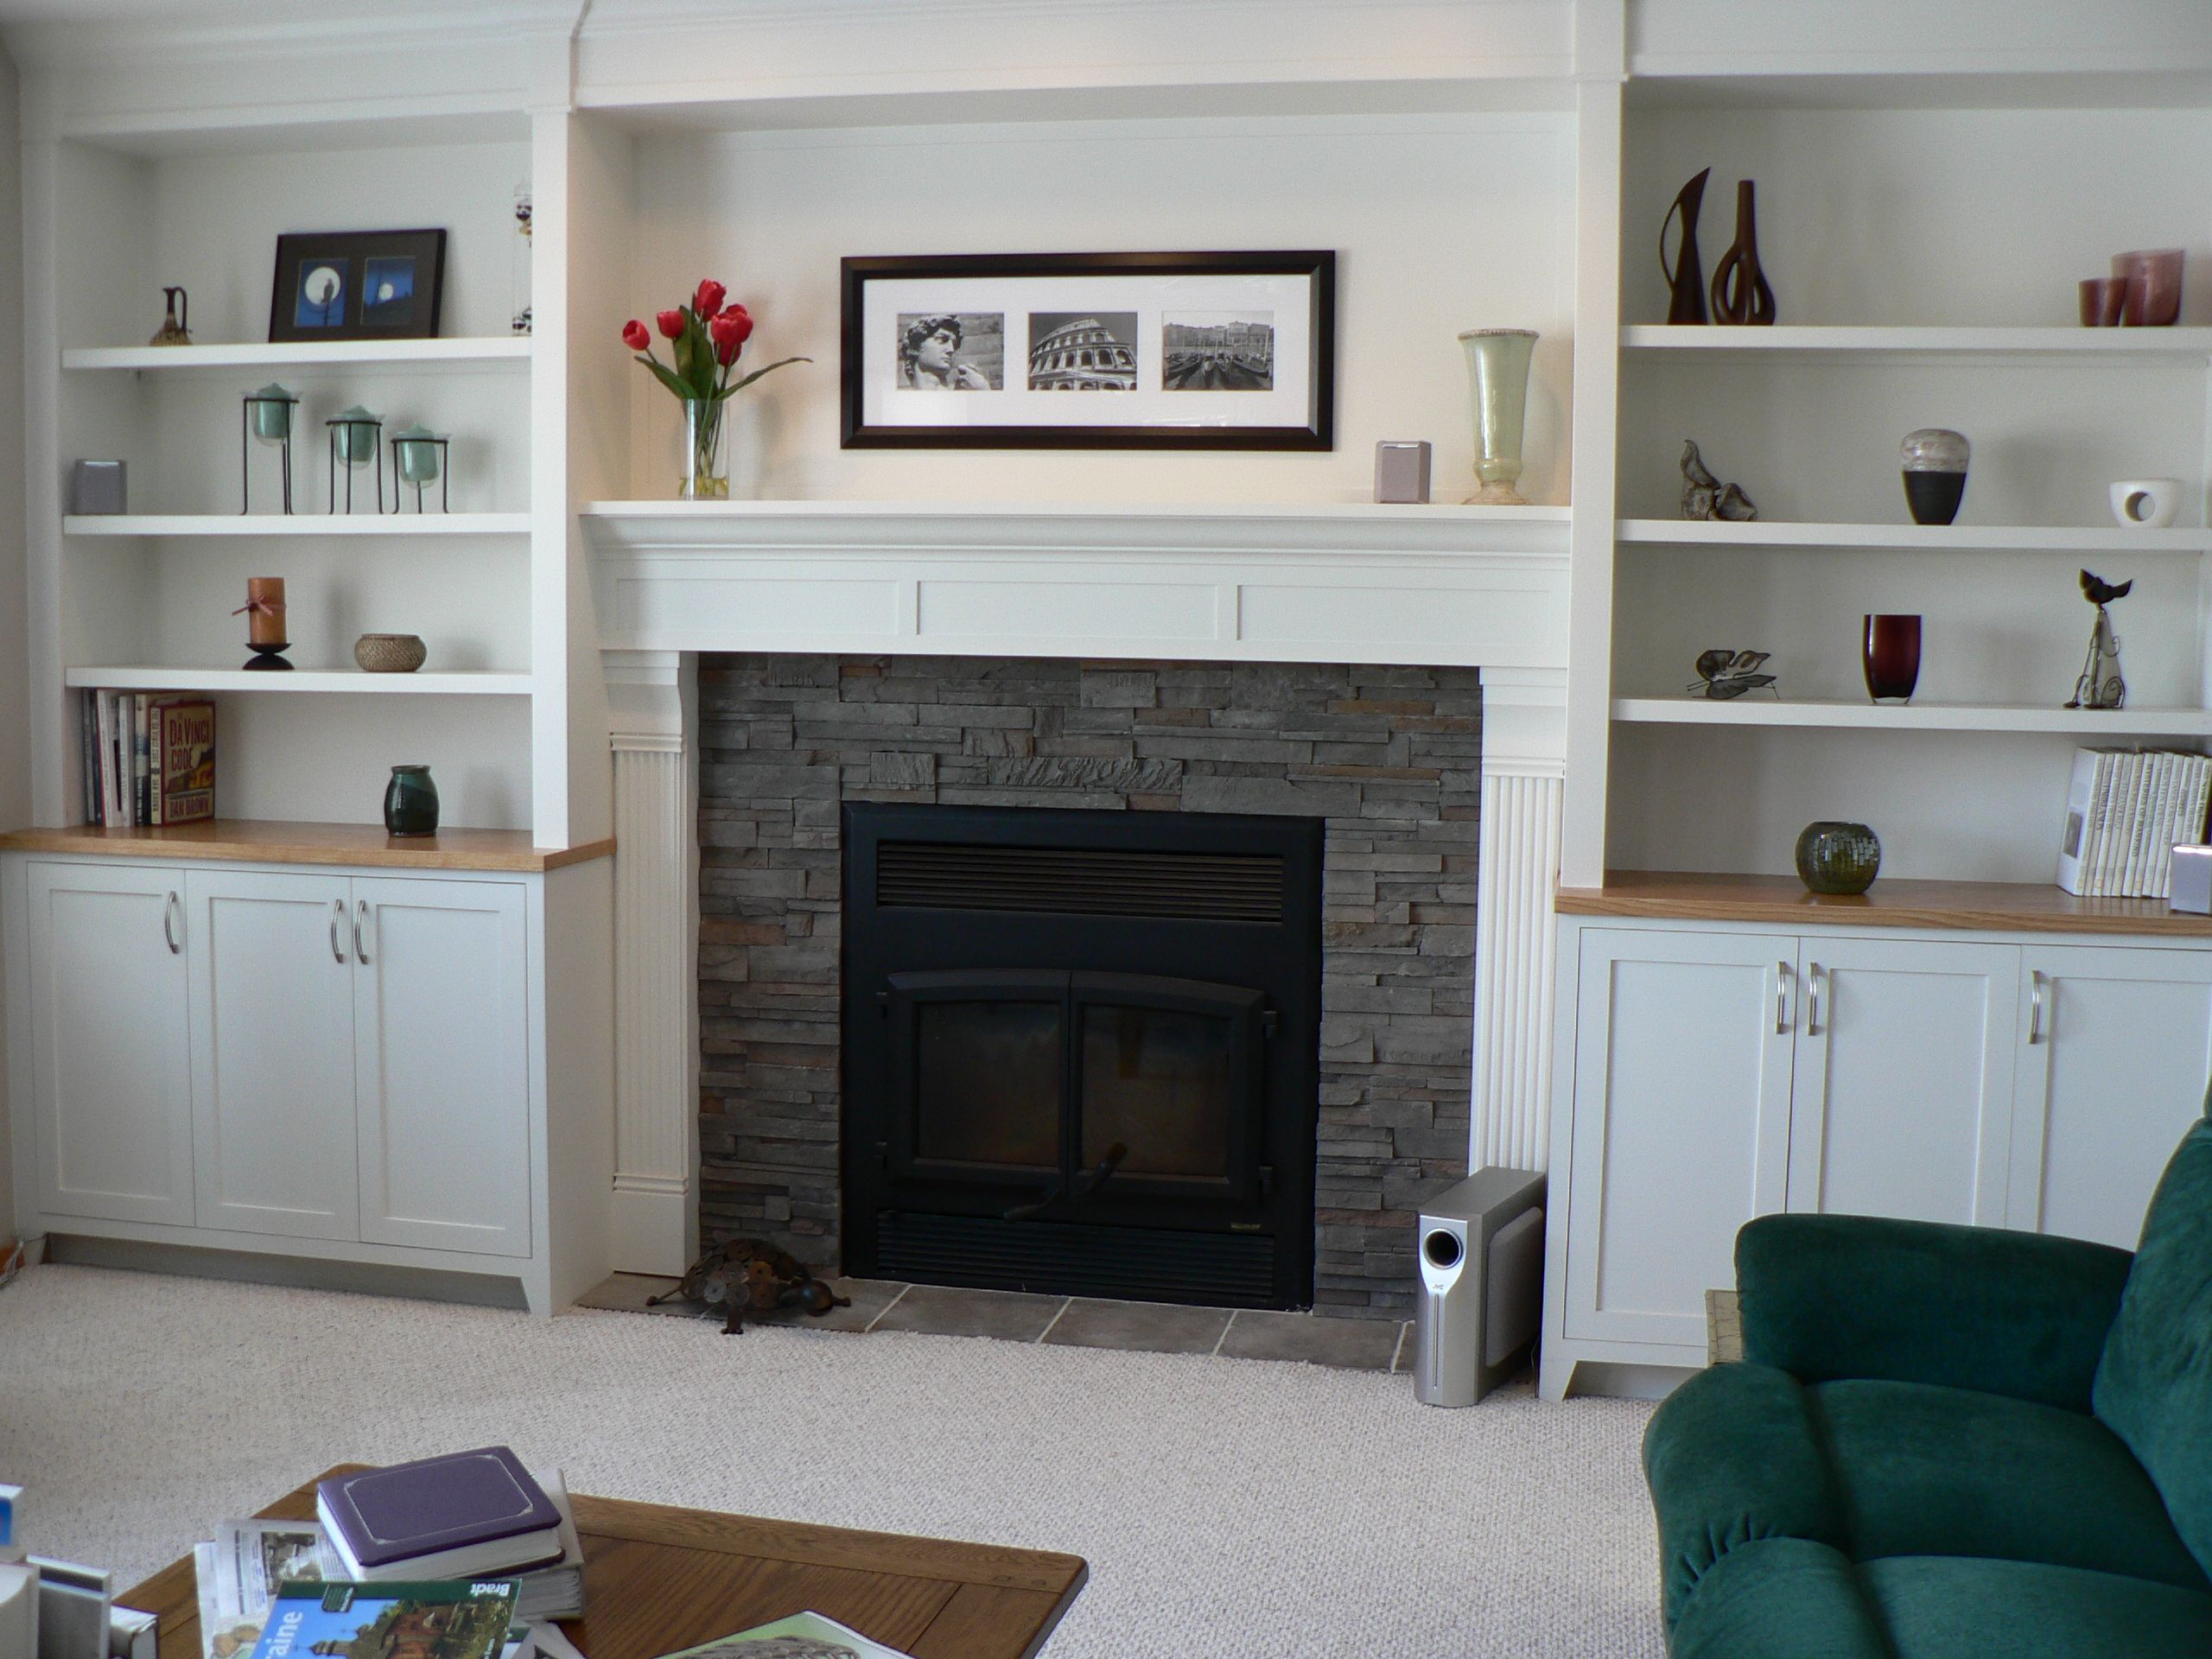 Superbe Fireplaces With Bookshelves On Each Side | Shelves By Fireplace